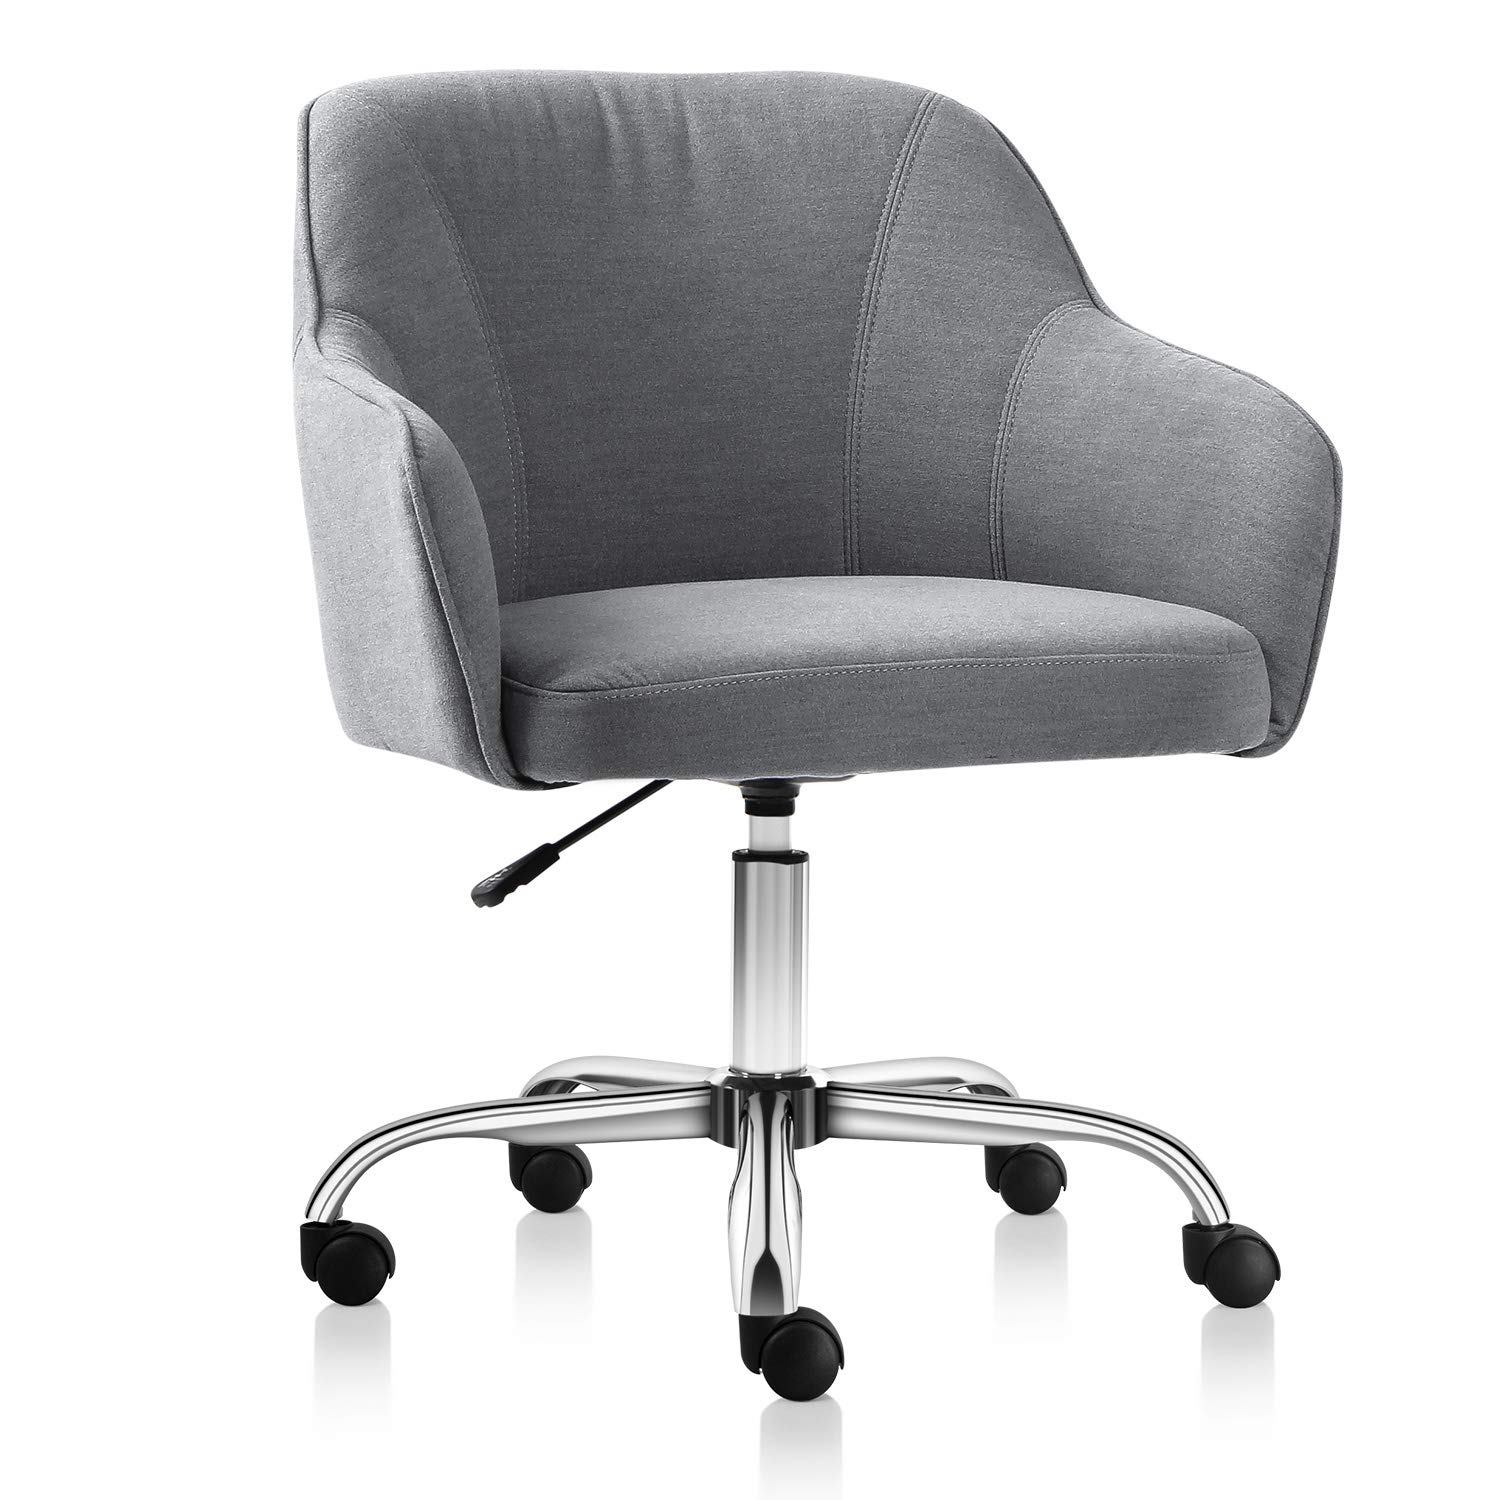 Stupendous Vh Furniture Home Office Chair Upholstered Desk Chair With Arms For Conference Room Or Office Gray Download Free Architecture Designs Intelgarnamadebymaigaardcom